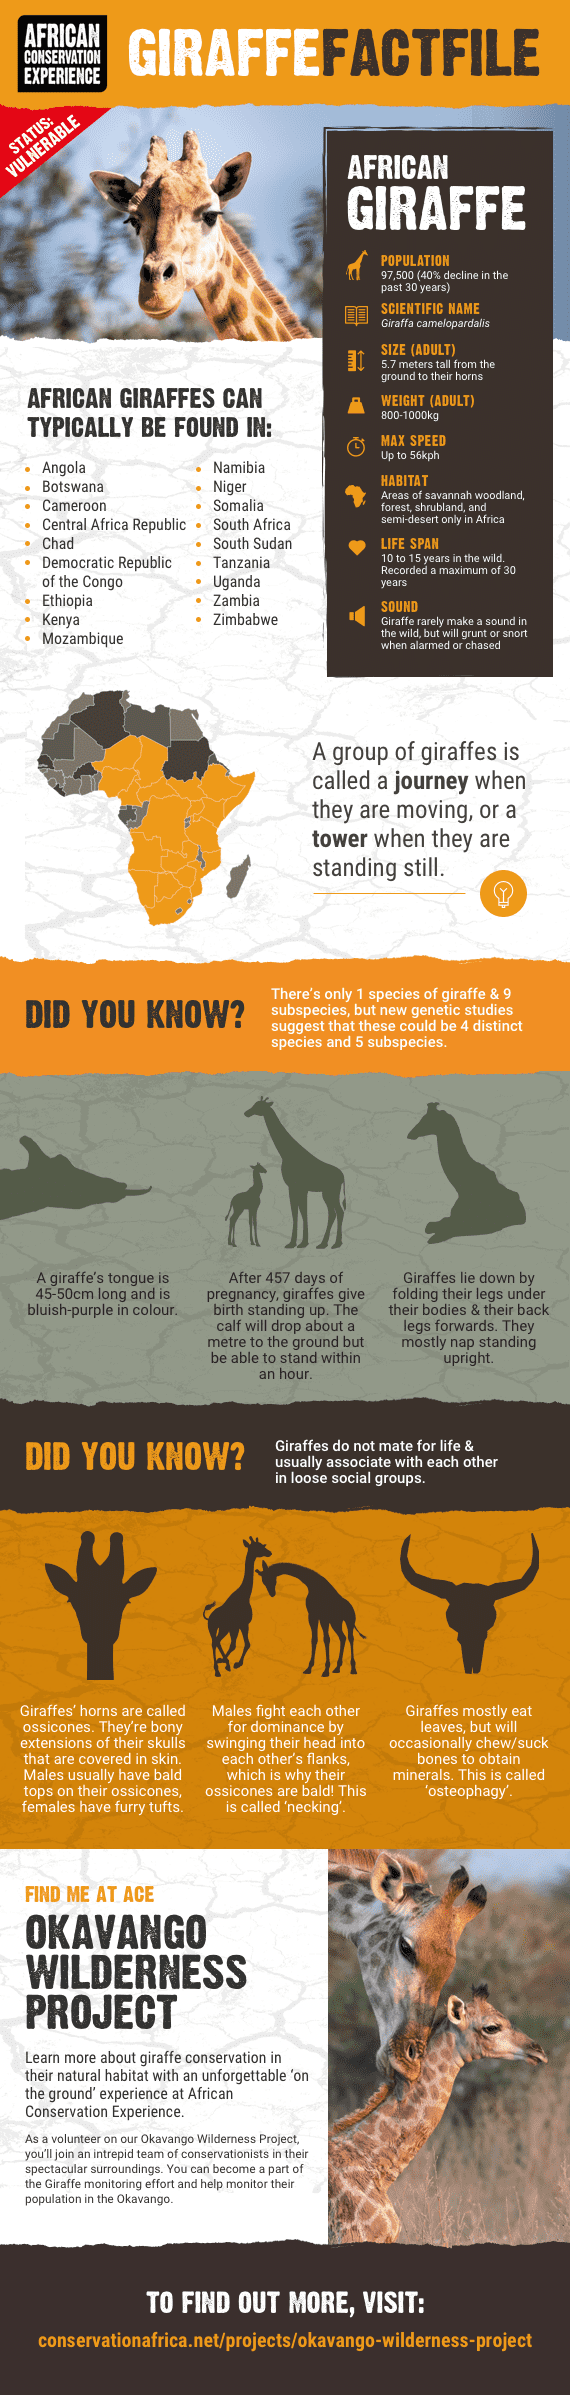 giraffe infographic including facts about body, habitat, behaviour and conservation status